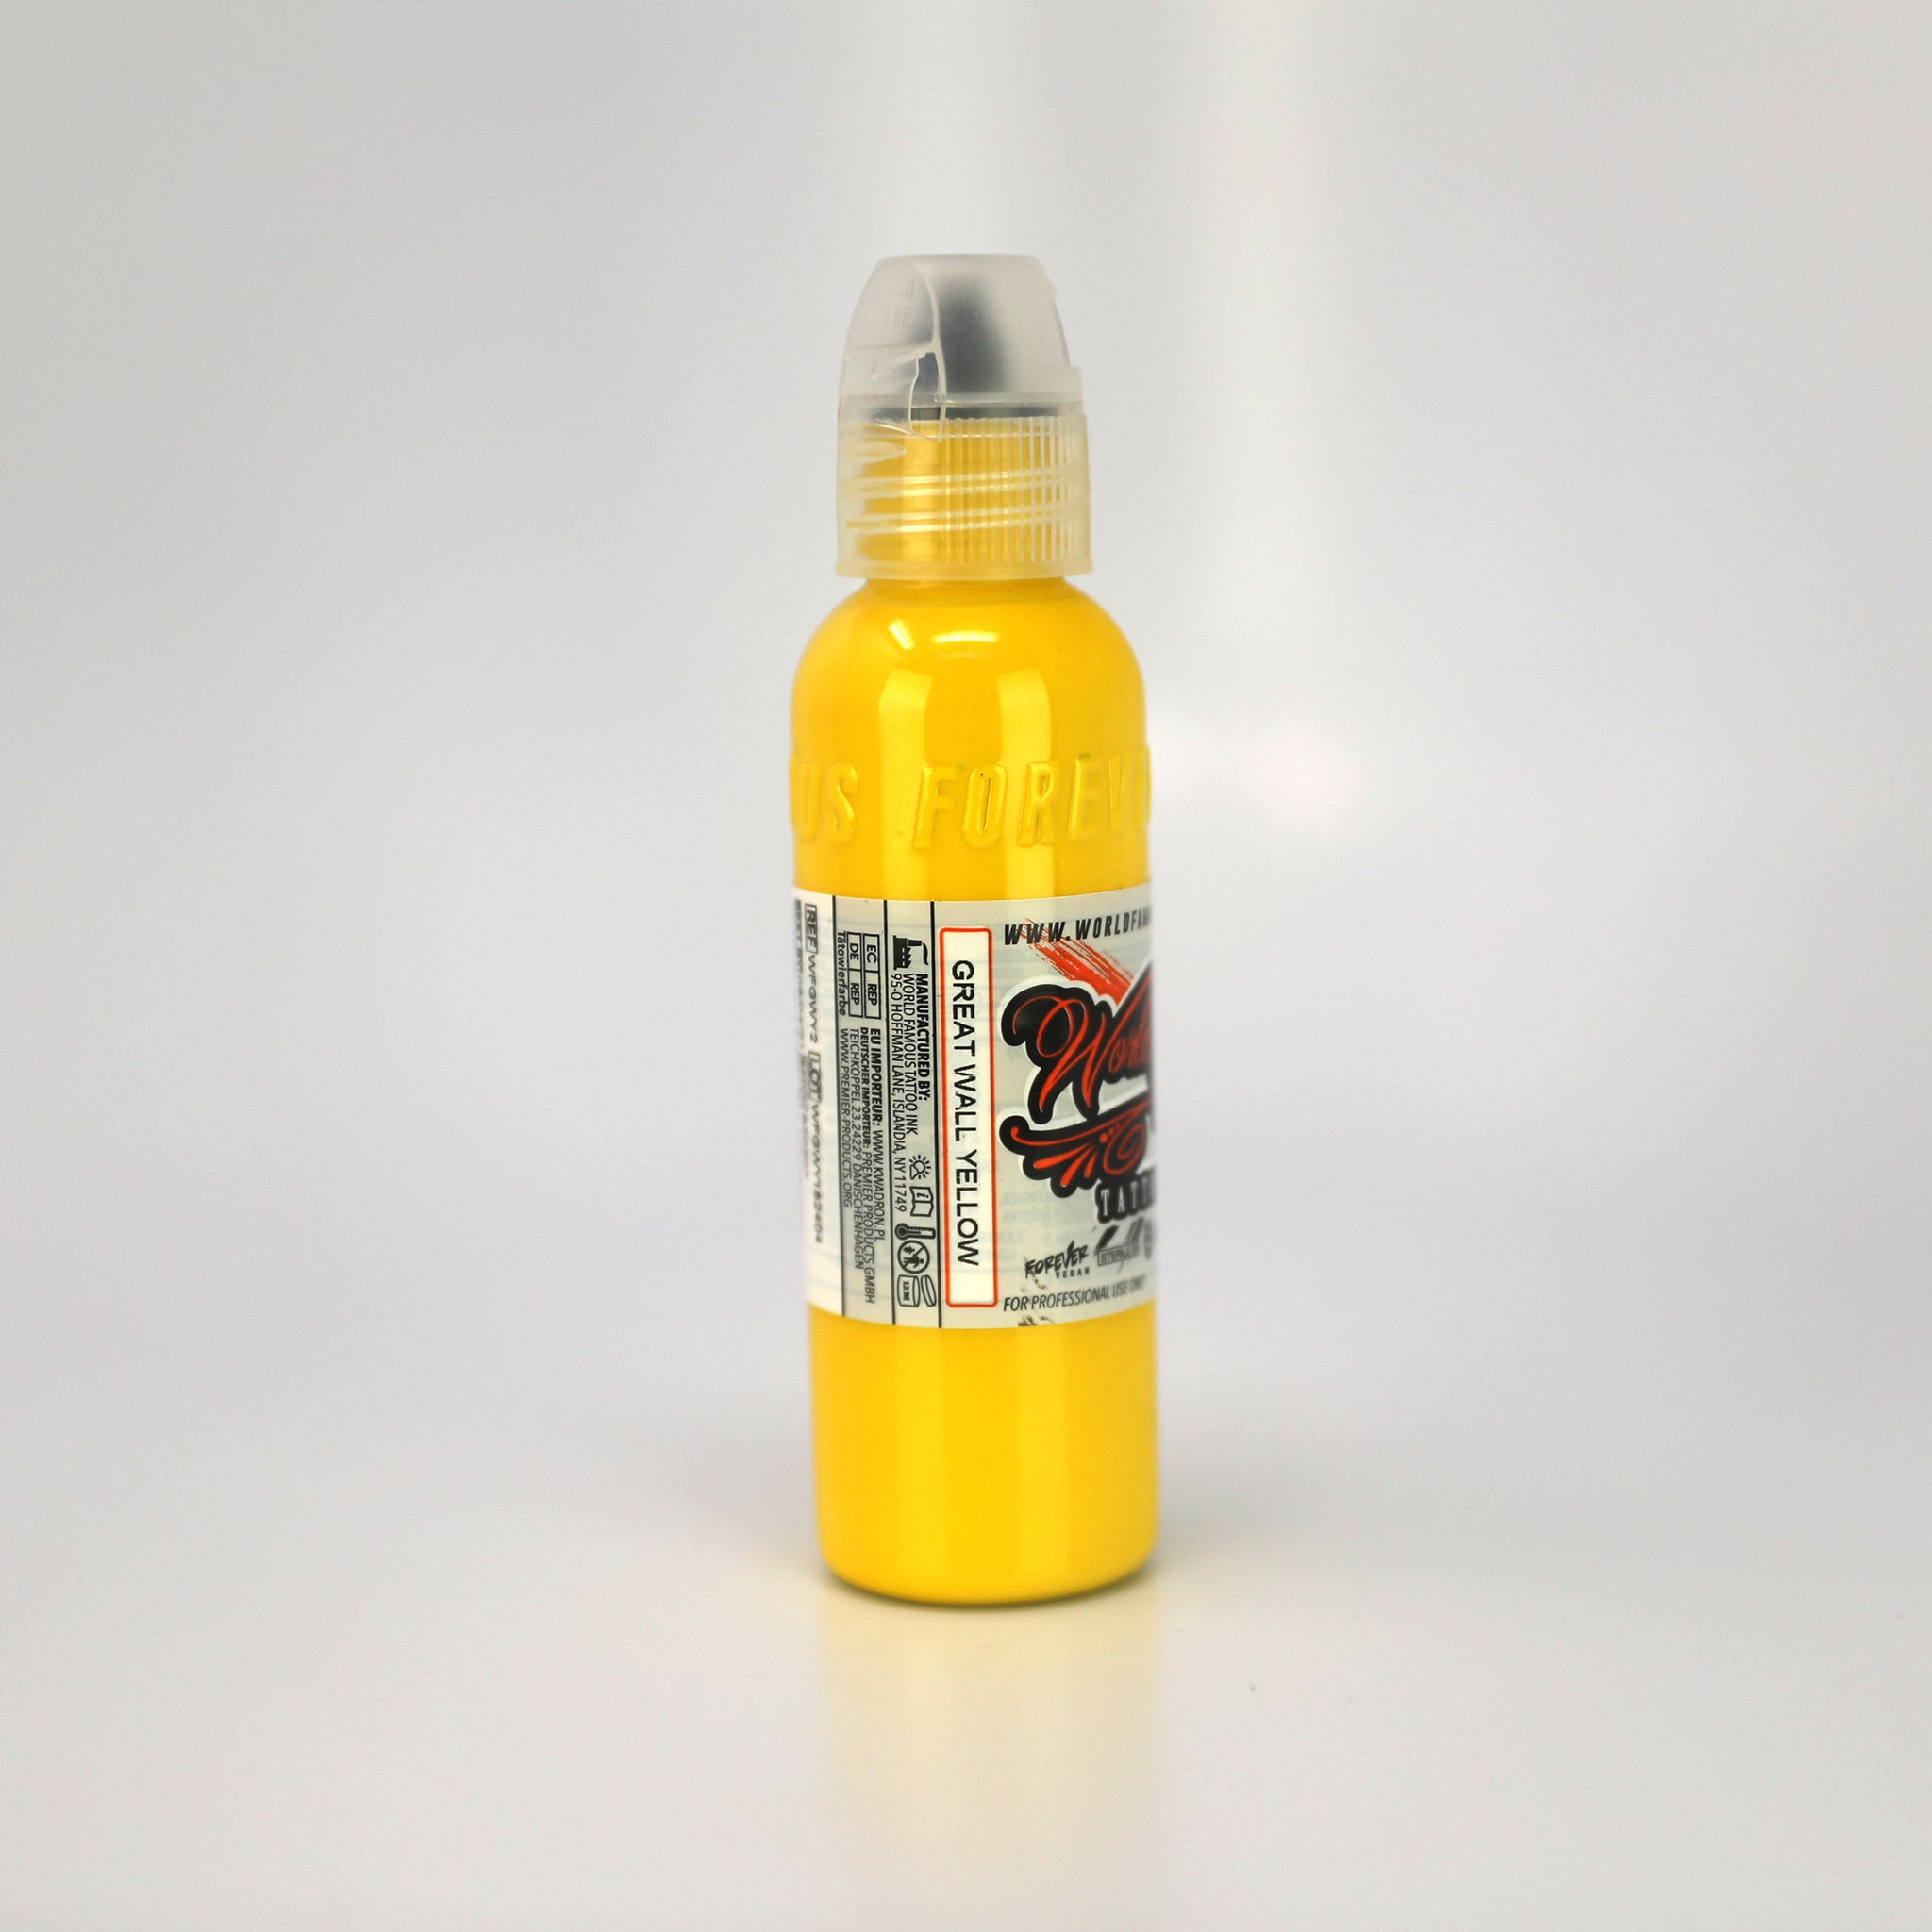 WORLD FAMOUS INK - GREAT WALL YELLOW, Ink, - Inktrek